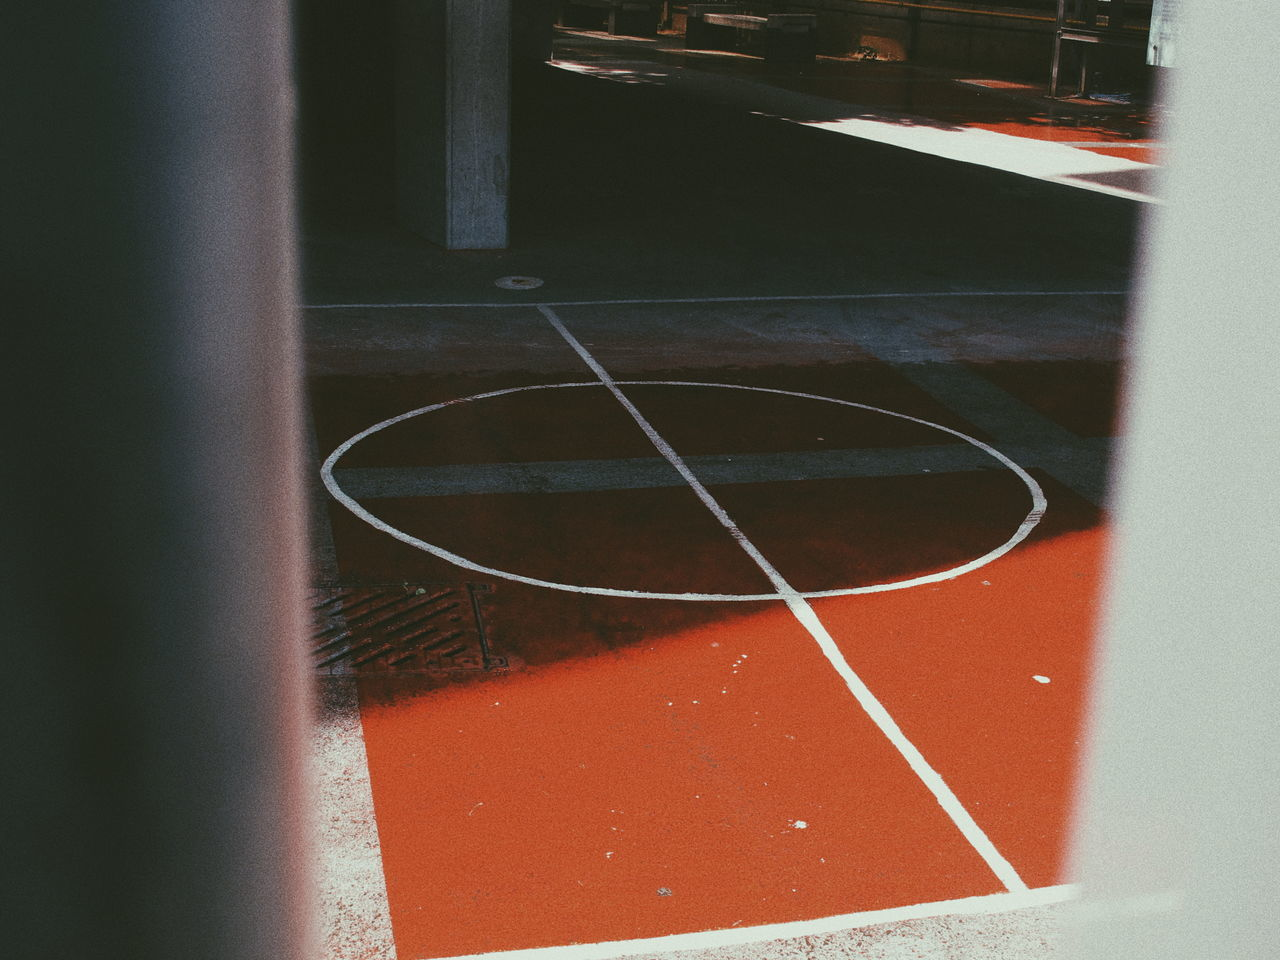 CLOSE-UP OF BASKETBALL COURT